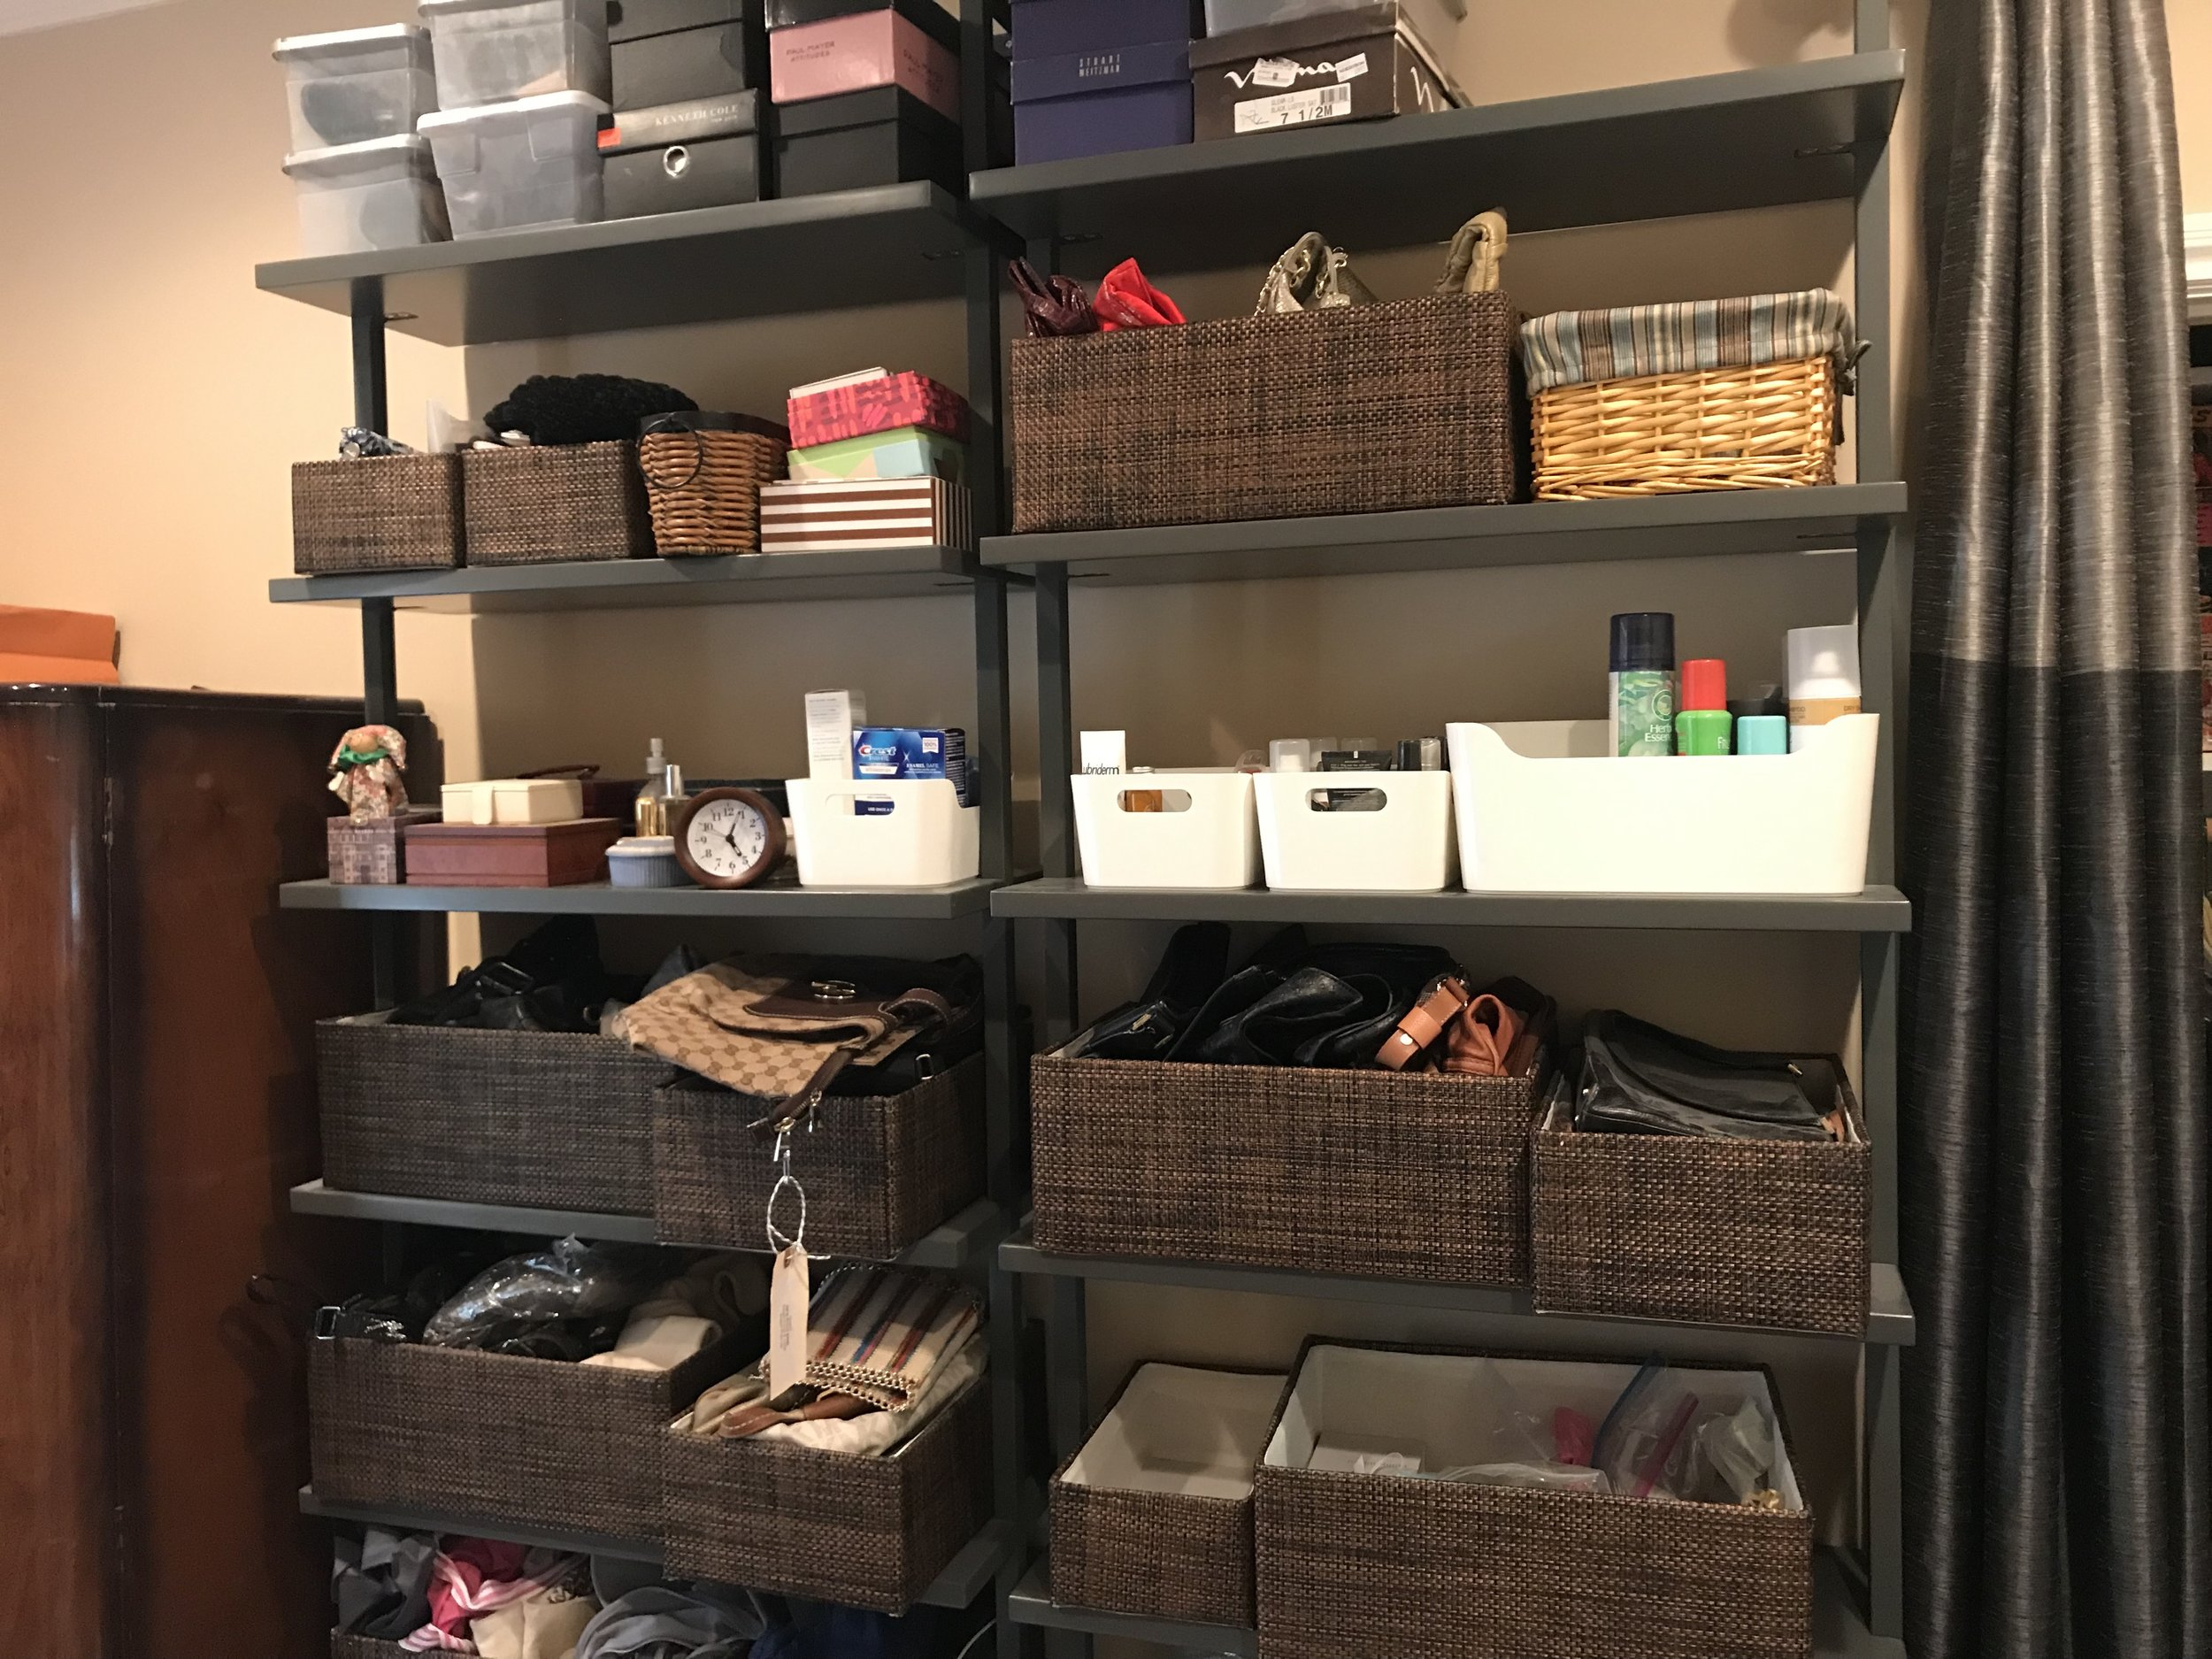 This space is containerized, but not organized. At this point, the client and I still needed to edit her items and store like with like in containers that made sense to her.